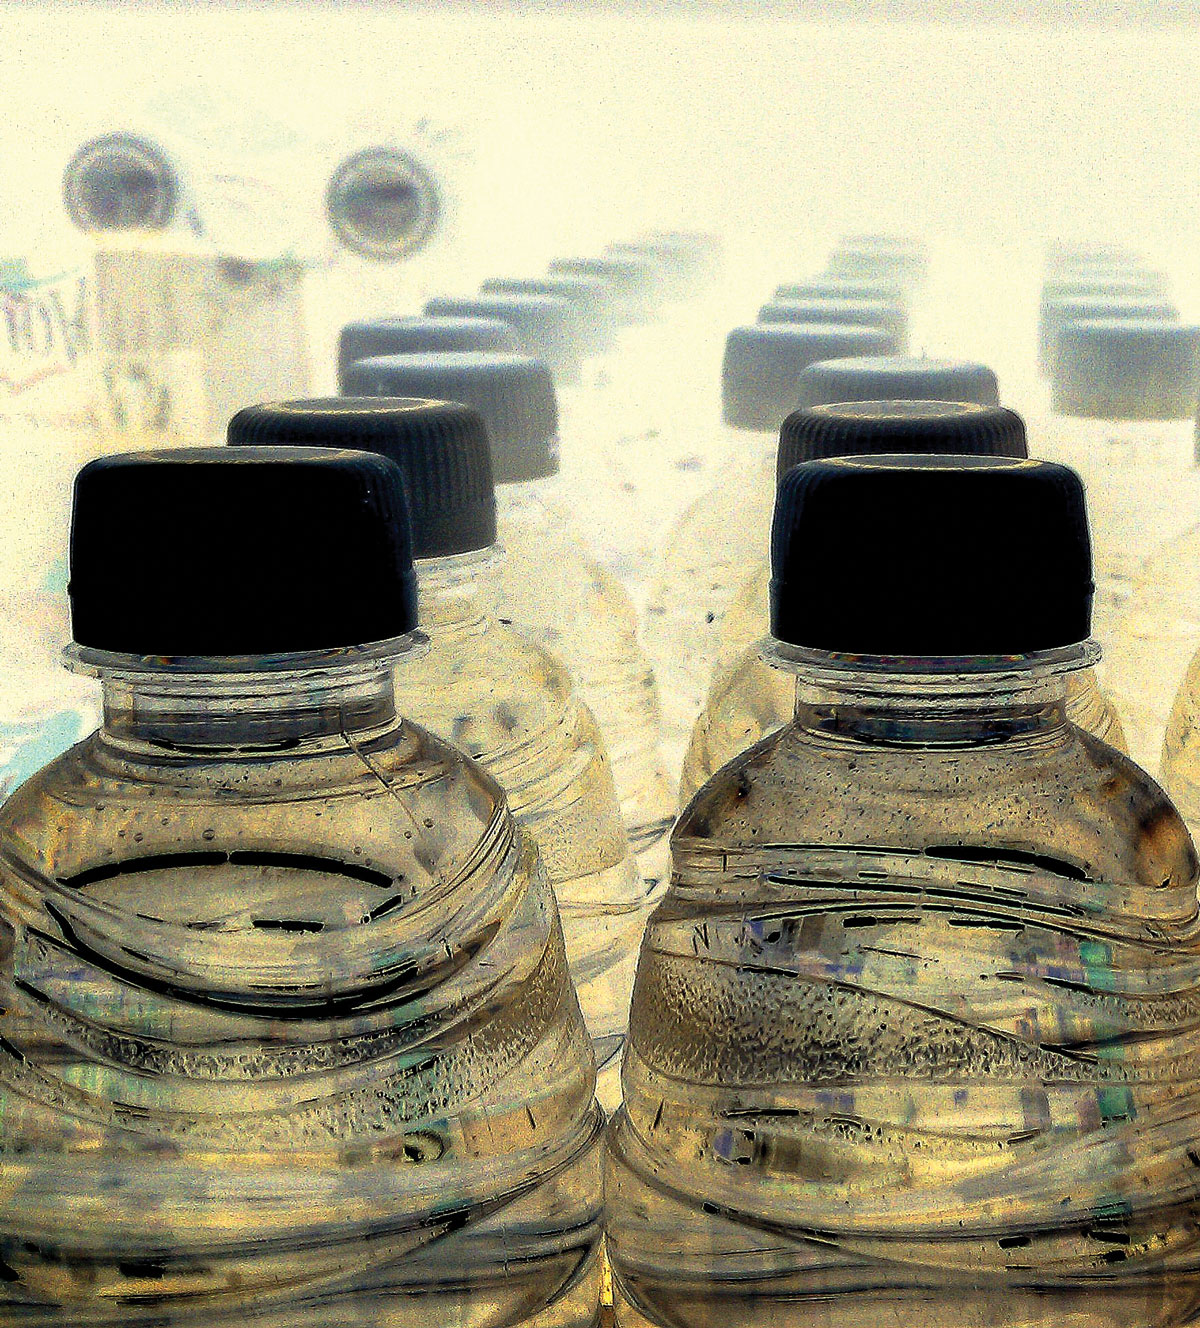 Plastic bottles containing water from Flint's drinking water